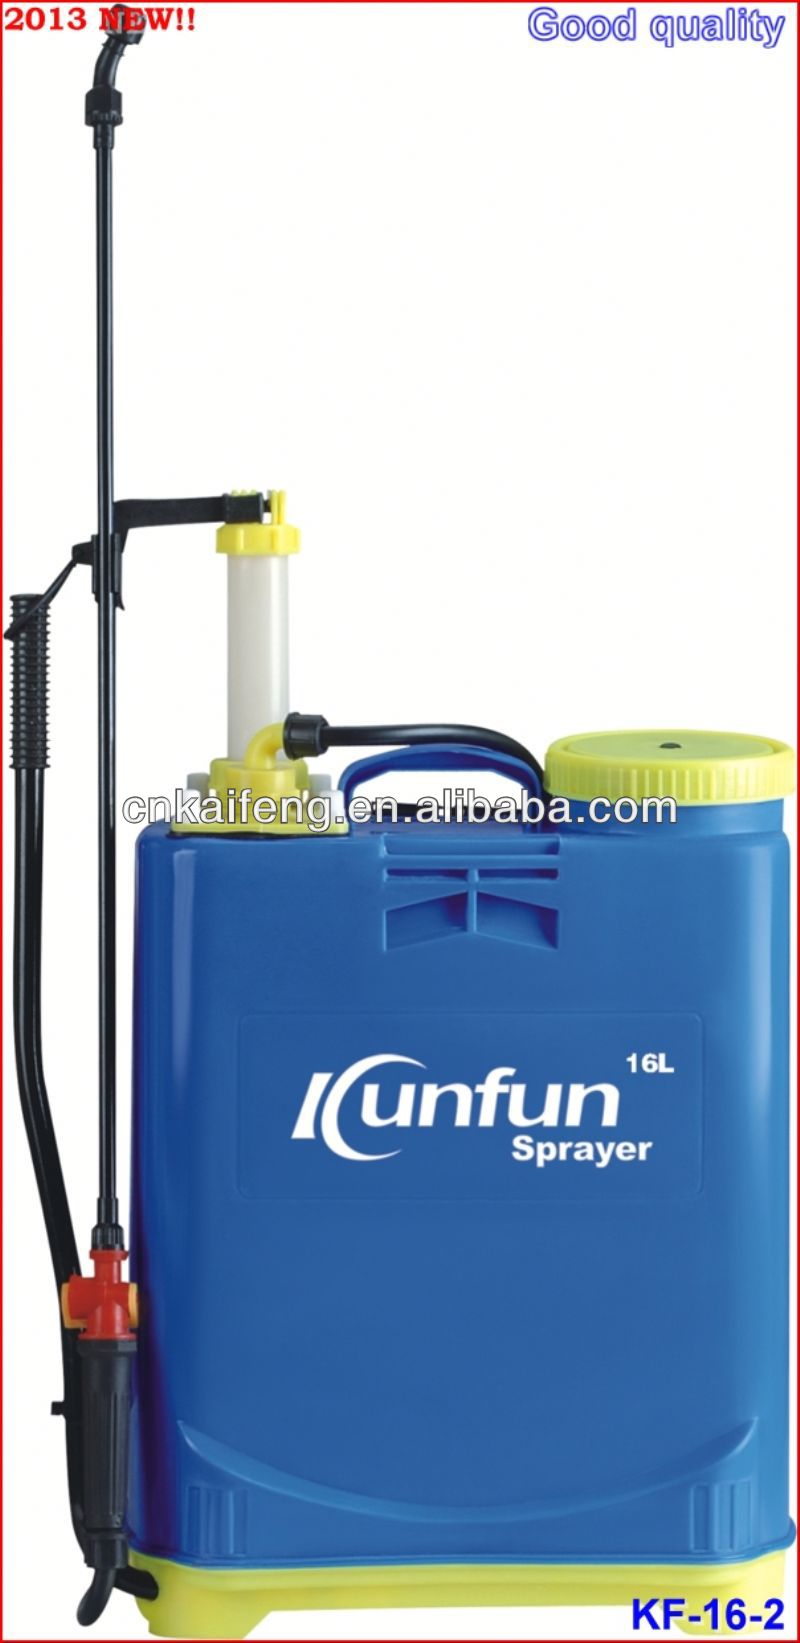 China Sprayer Top 1 2013 Agricultural Garden sprayer farm land leveler